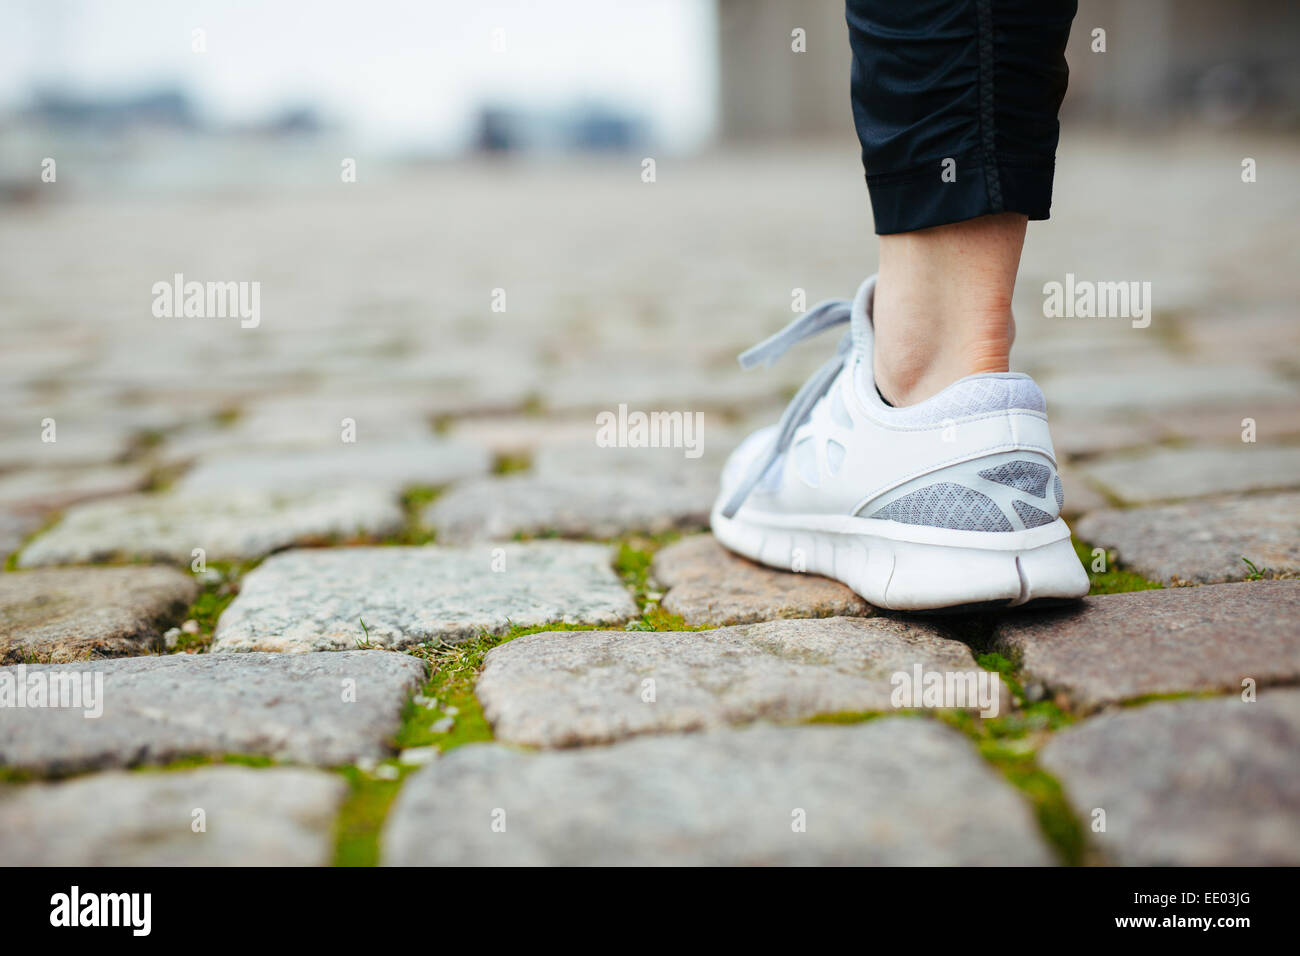 Leg of female jogger walking on pavement. Focus of shoes. Woman feet on sidewalk. - Stock Image